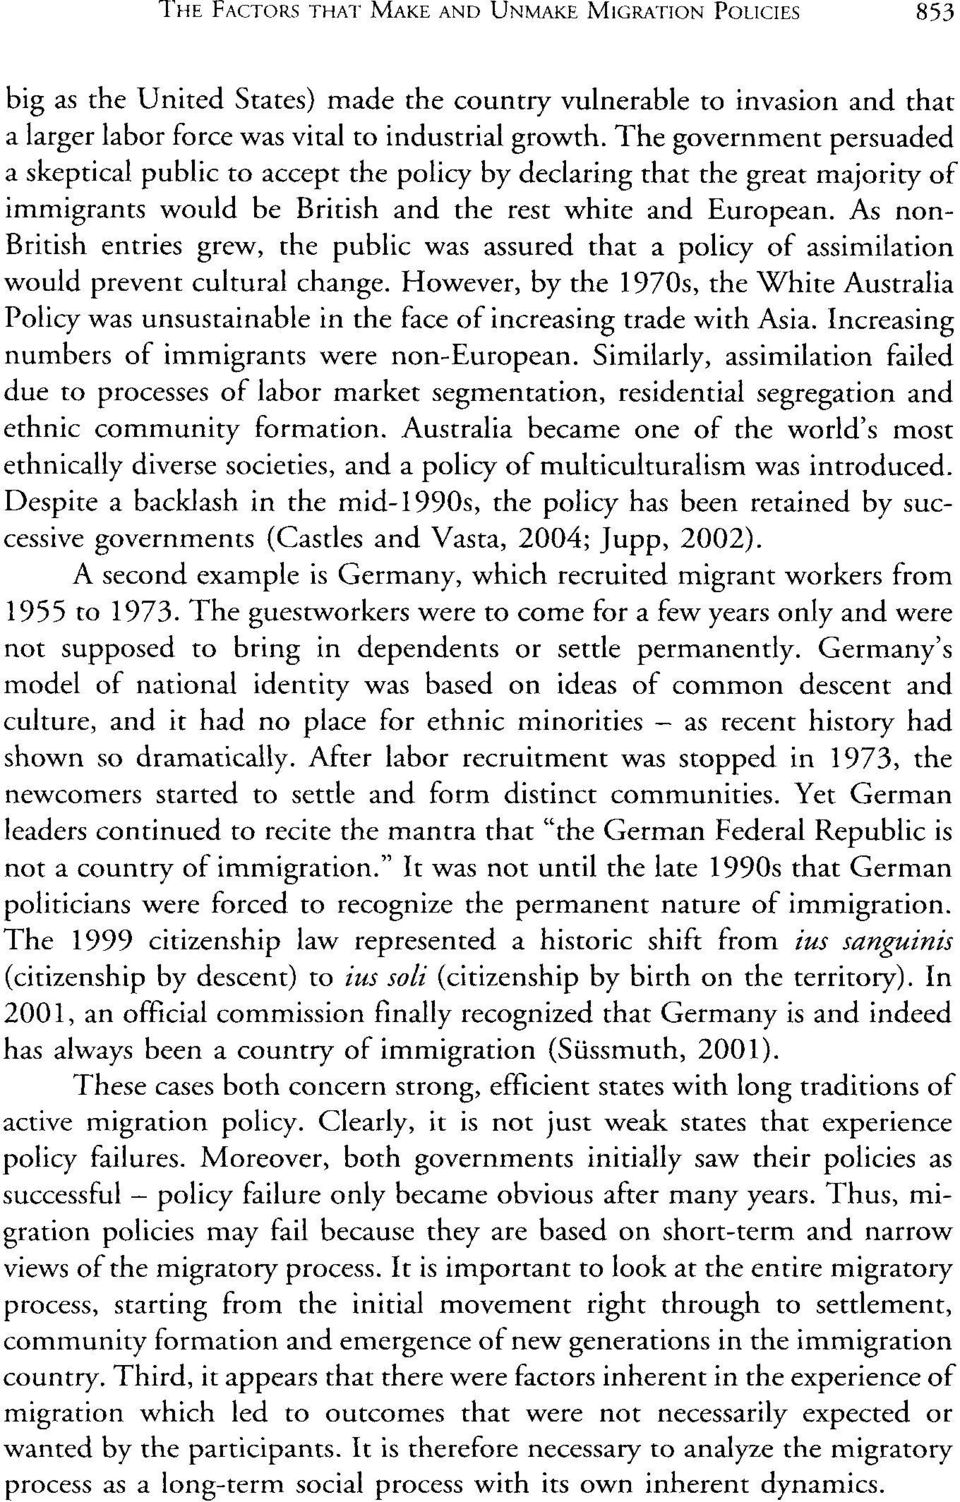 As non British entries grew, public was assured that a policy assimilation would prevent cultural change.